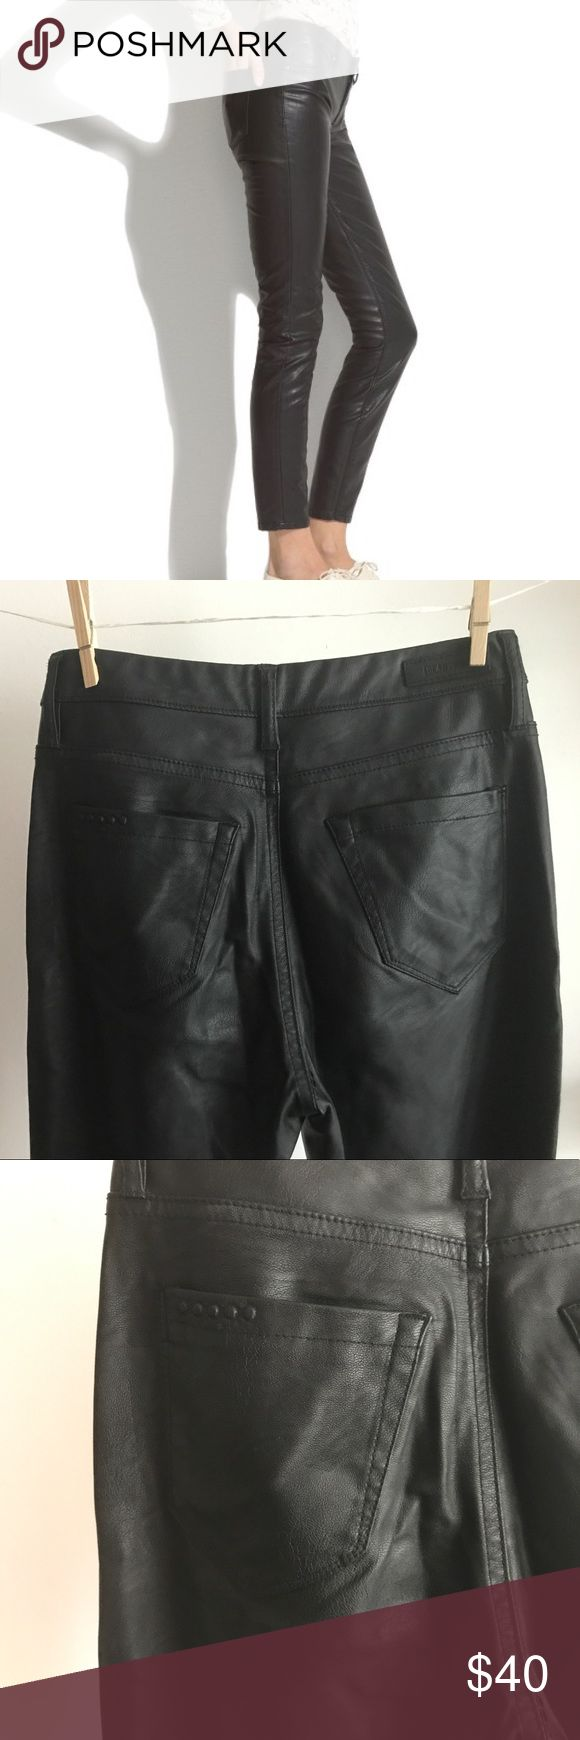 """BlankNYC faux leather pants Dress these up or down! Poly and viscose """"leather"""" pants. Love these pants because they're not as tight as most leather leggings, and can be worn more casually. Blank NYC Pants Skinny"""